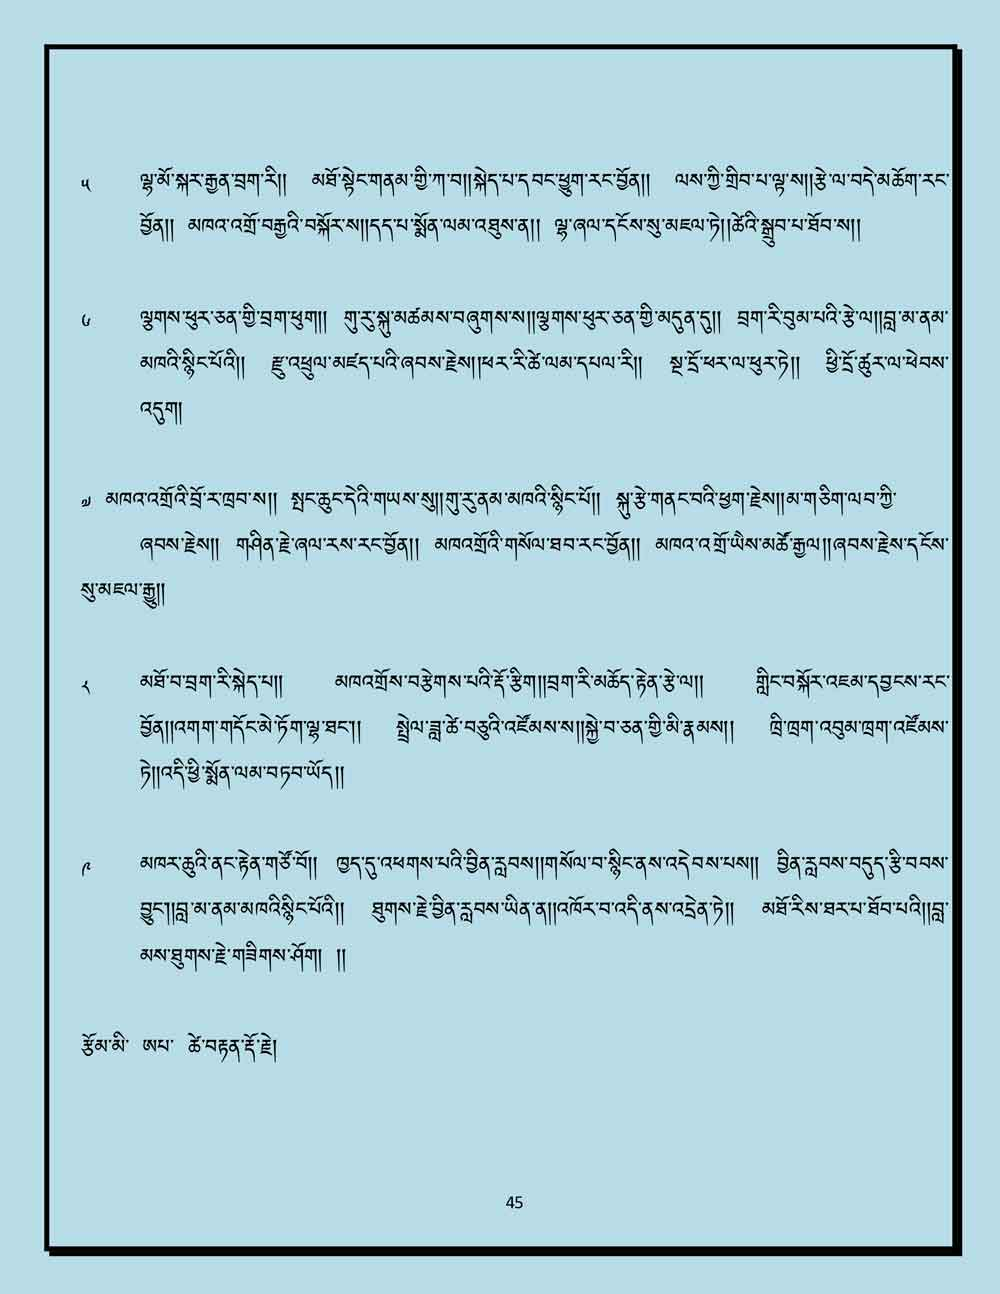 Ap-Tseten-Lyrics-45.jpg